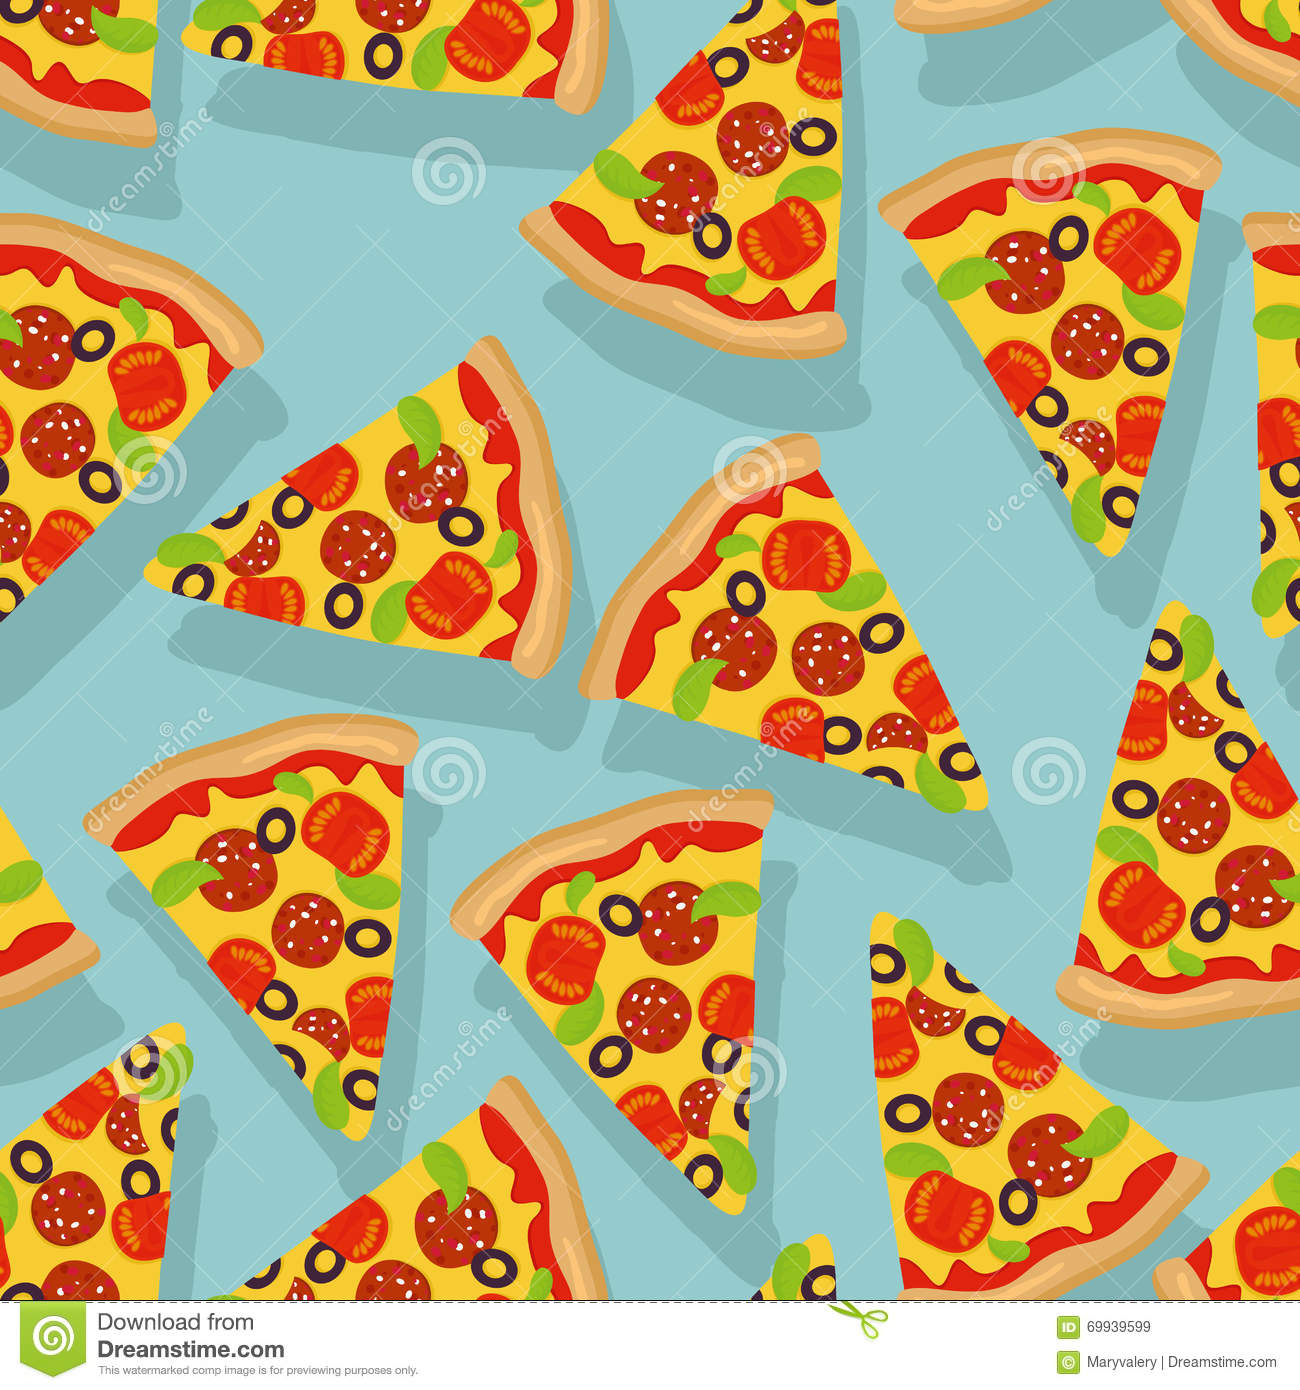 pizza clipart background #14